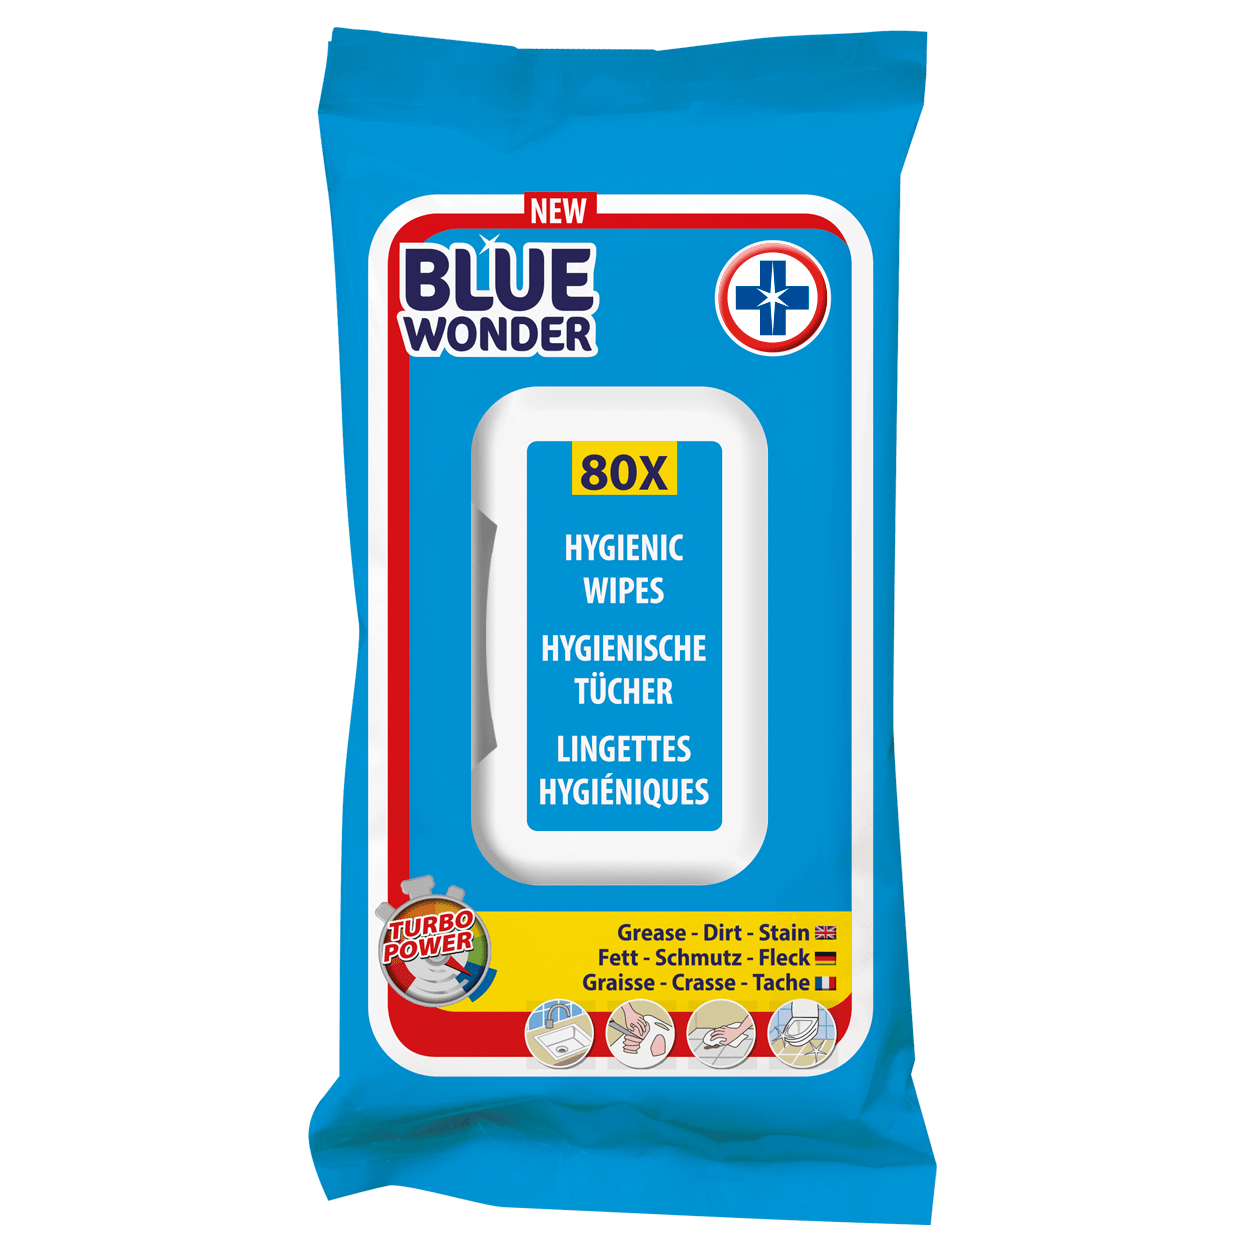 Removes grease, dirt and all kinds of stains (even from clothing). Can be used to clean doors, kitchen, bathroom, countertop, extractor hood, cupboards, windows, mirrors, car rims, wood and garden furniture, to name a few. Ready for use. Ideal for quick, daily cleaning jobs.